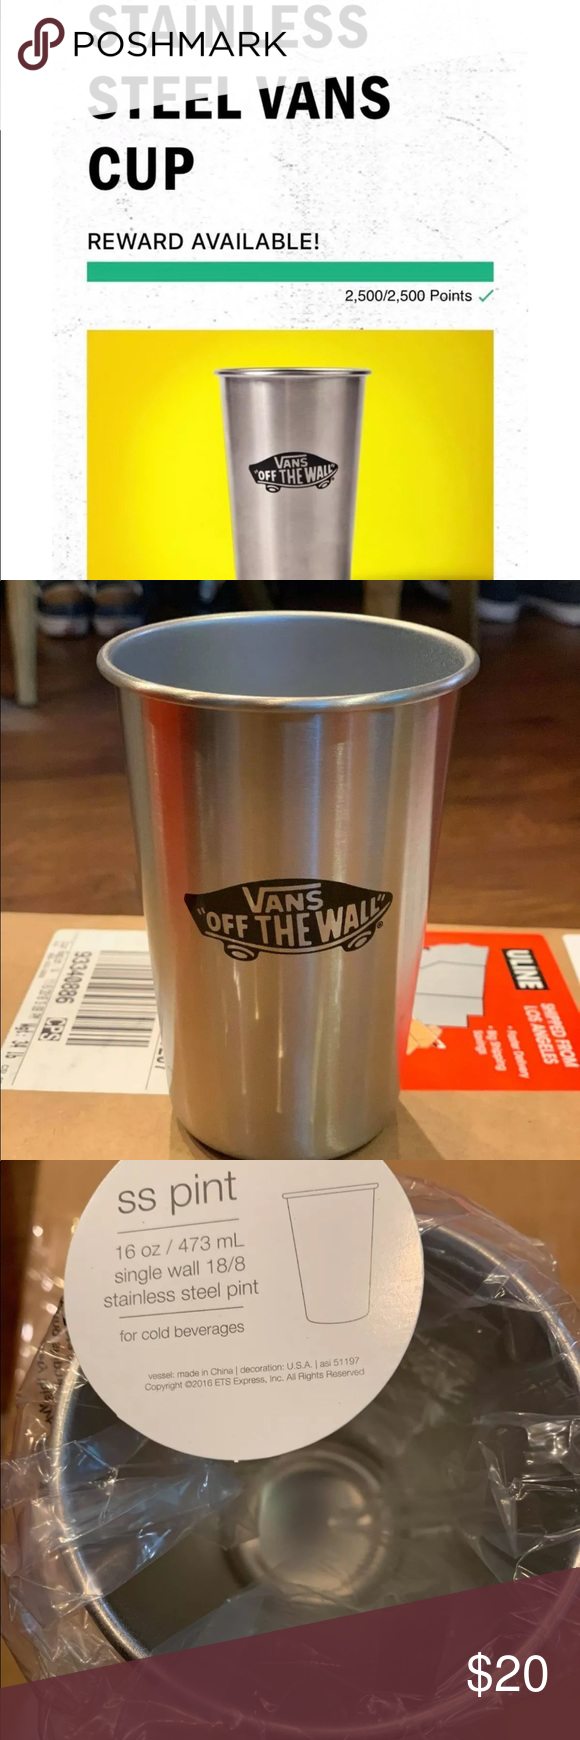 ac33f9d17 Vans Family Stainless Steel Cup 16oz NEW VANS STAINLESS STEEL CUP ONLY  AVAILABLE TO VANS FAMILY MEMBERS FOR 2500 POINT! Vans Accessories